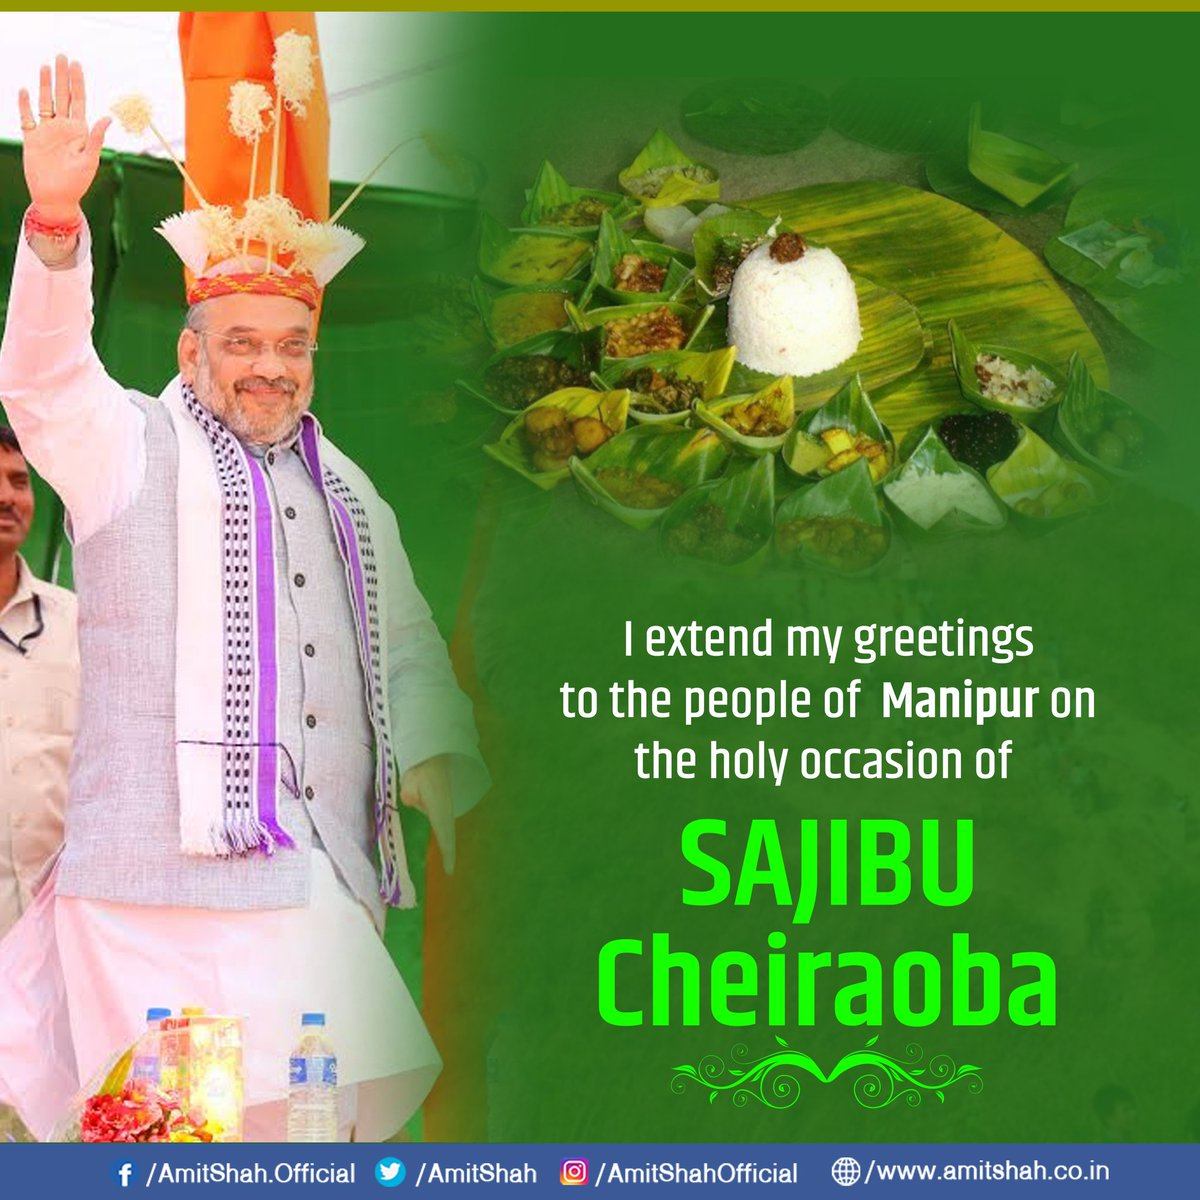 Amit shah on twitter i extend my greetings to the people of amit shah on twitter i extend my greetings to the people of manipur on the holy occasion of sajibu cheiraoba kristyandbryce Images